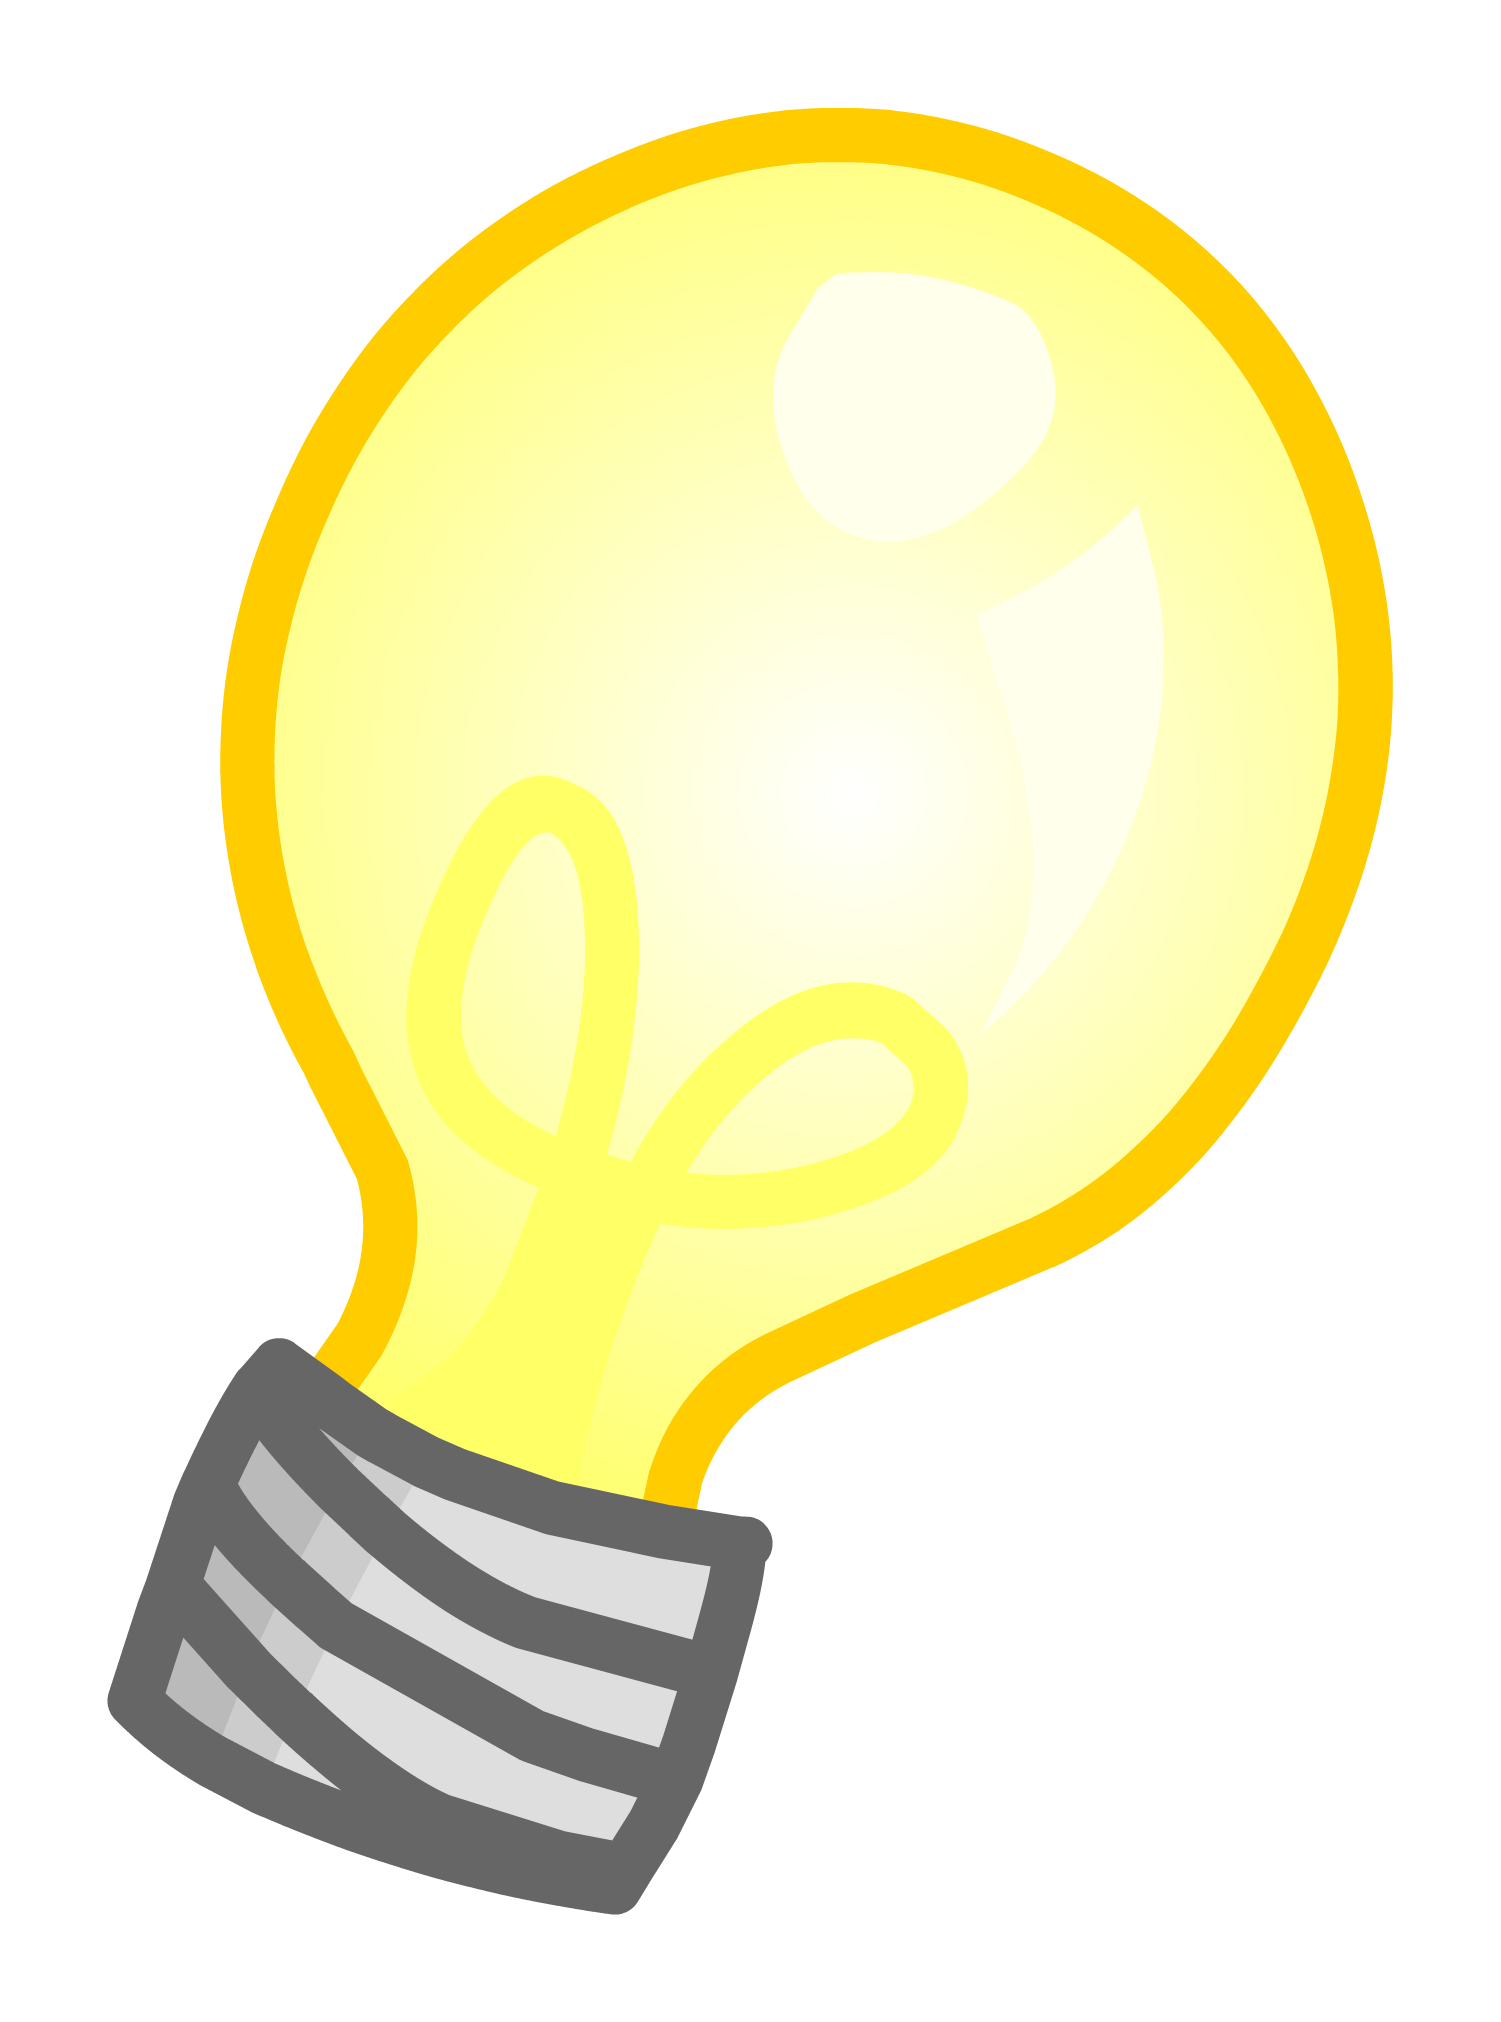 Incandescent light lighting clip. Lightbulb clipart lighted bulb